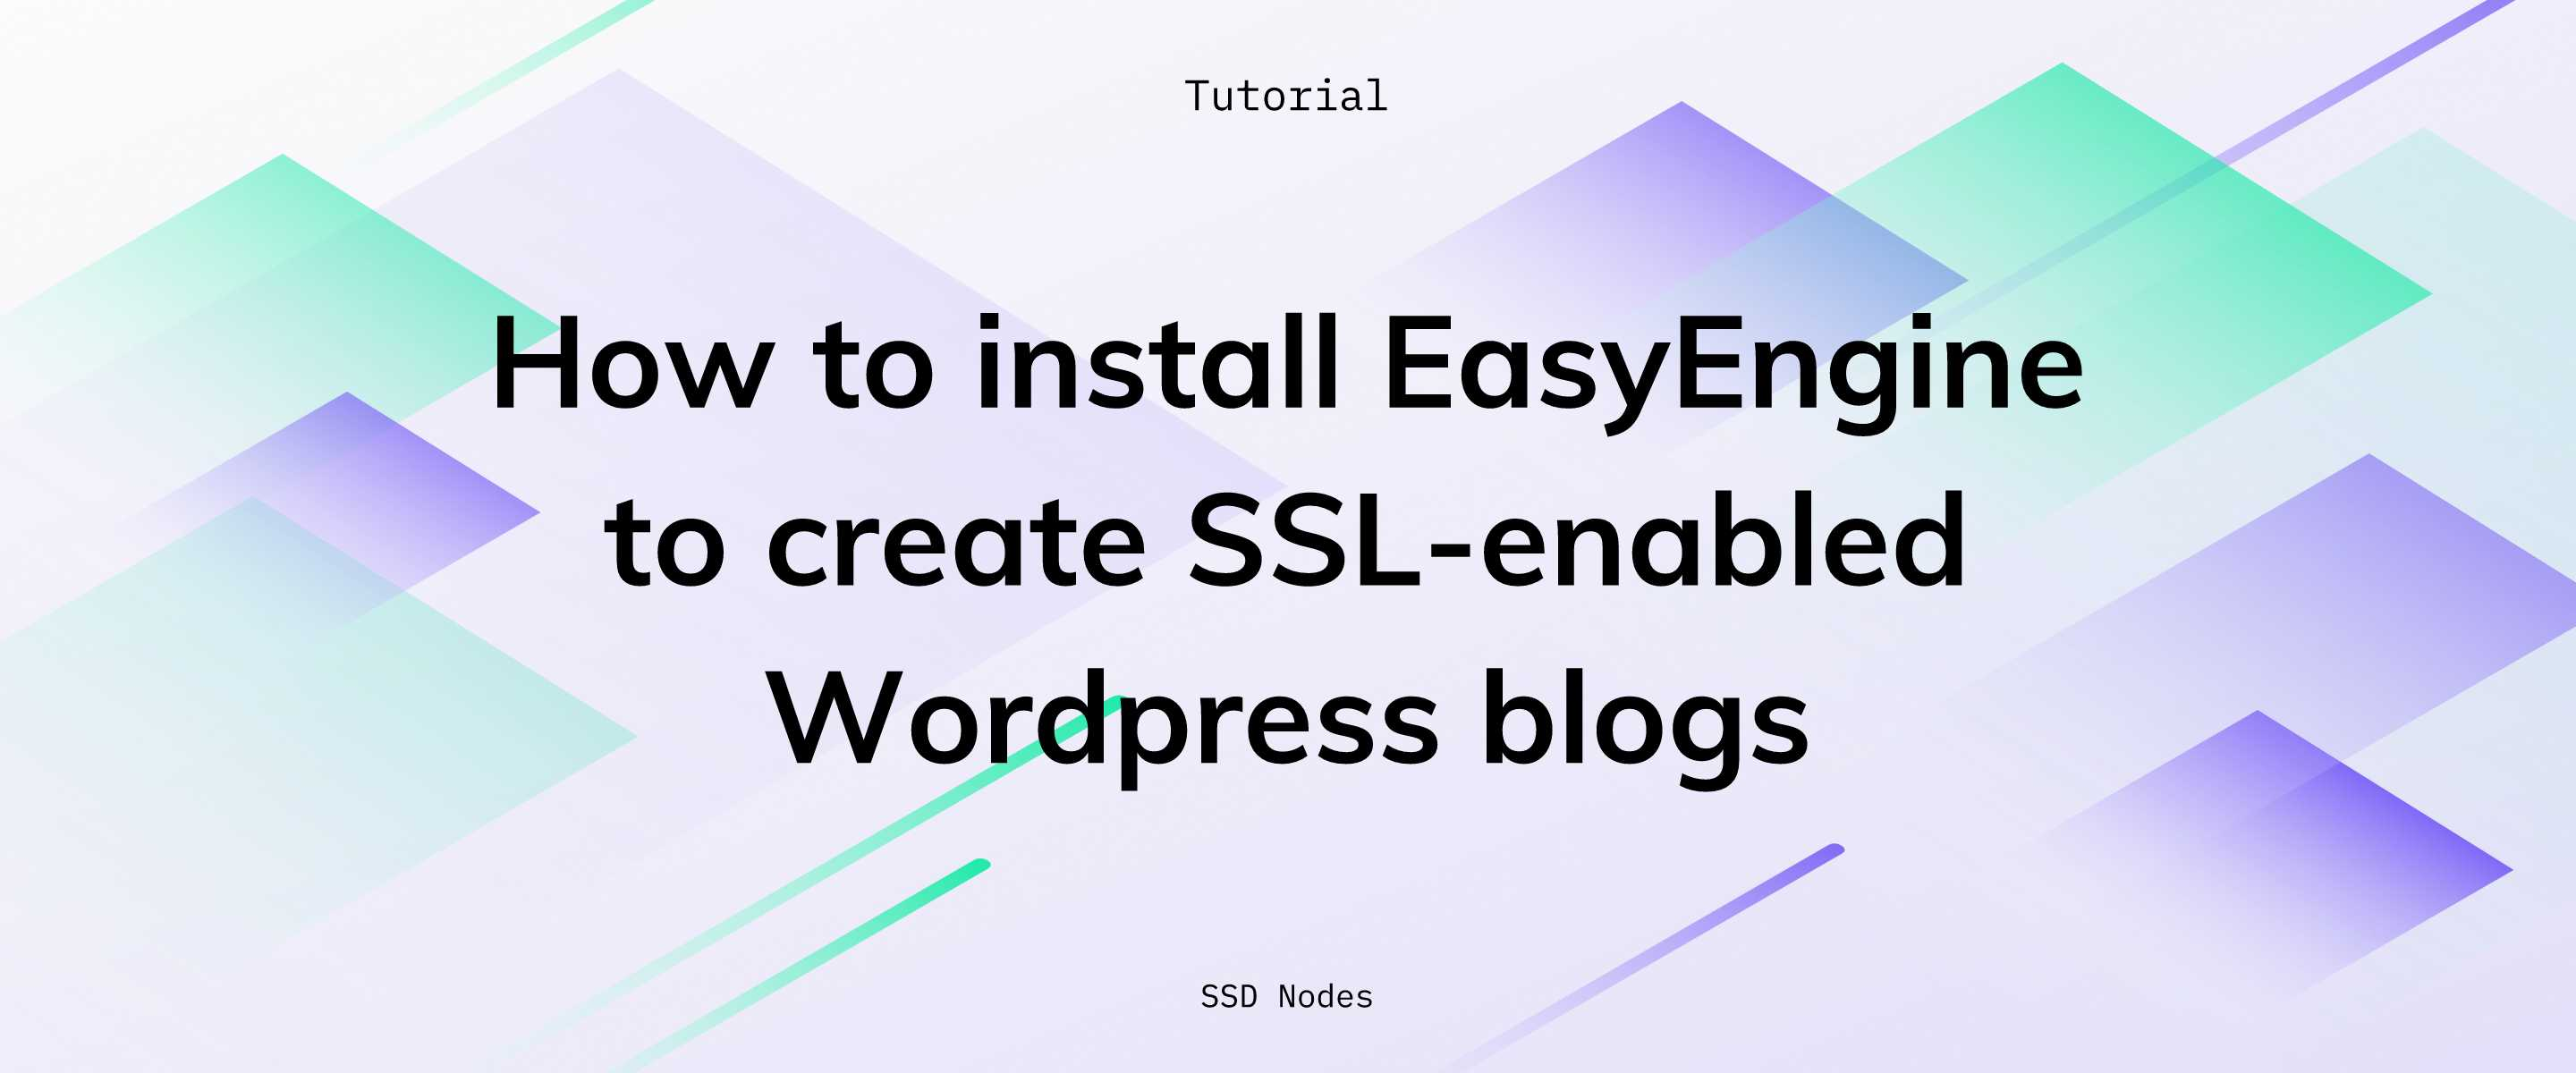 Install EasyEngine to deploy SSL-enabled Wordpress blogs